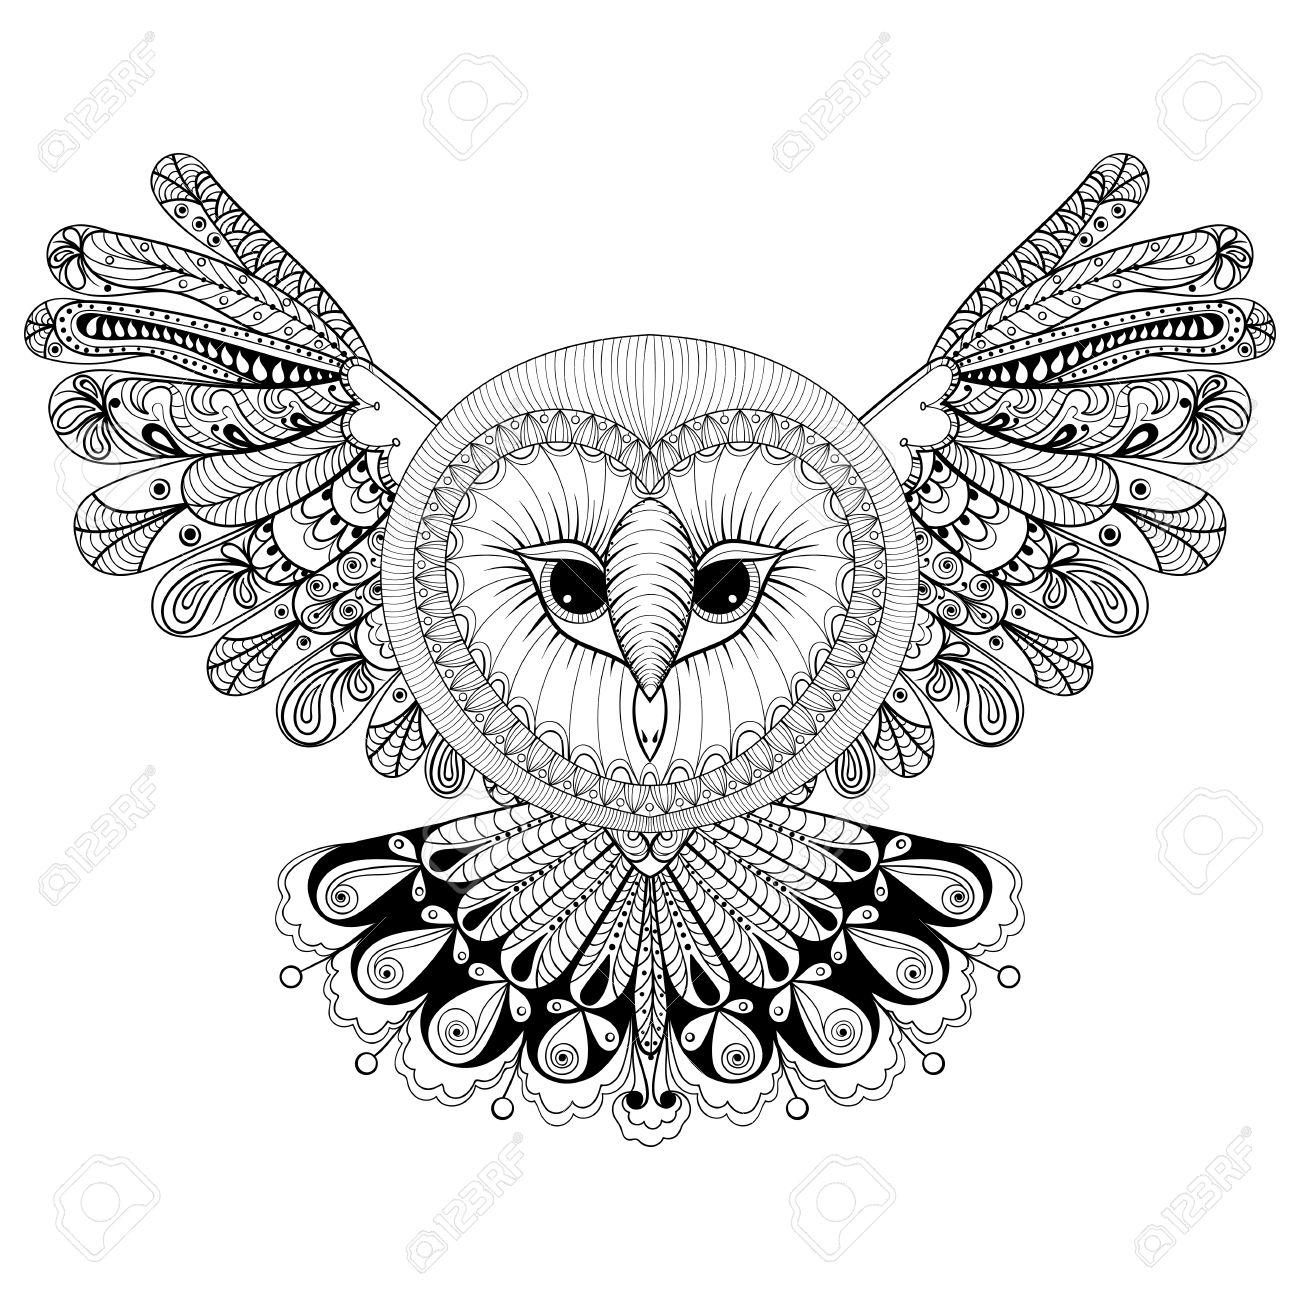 1300x1300 Coloring Page With Owl, Zentangle Hand Drawing Illustration